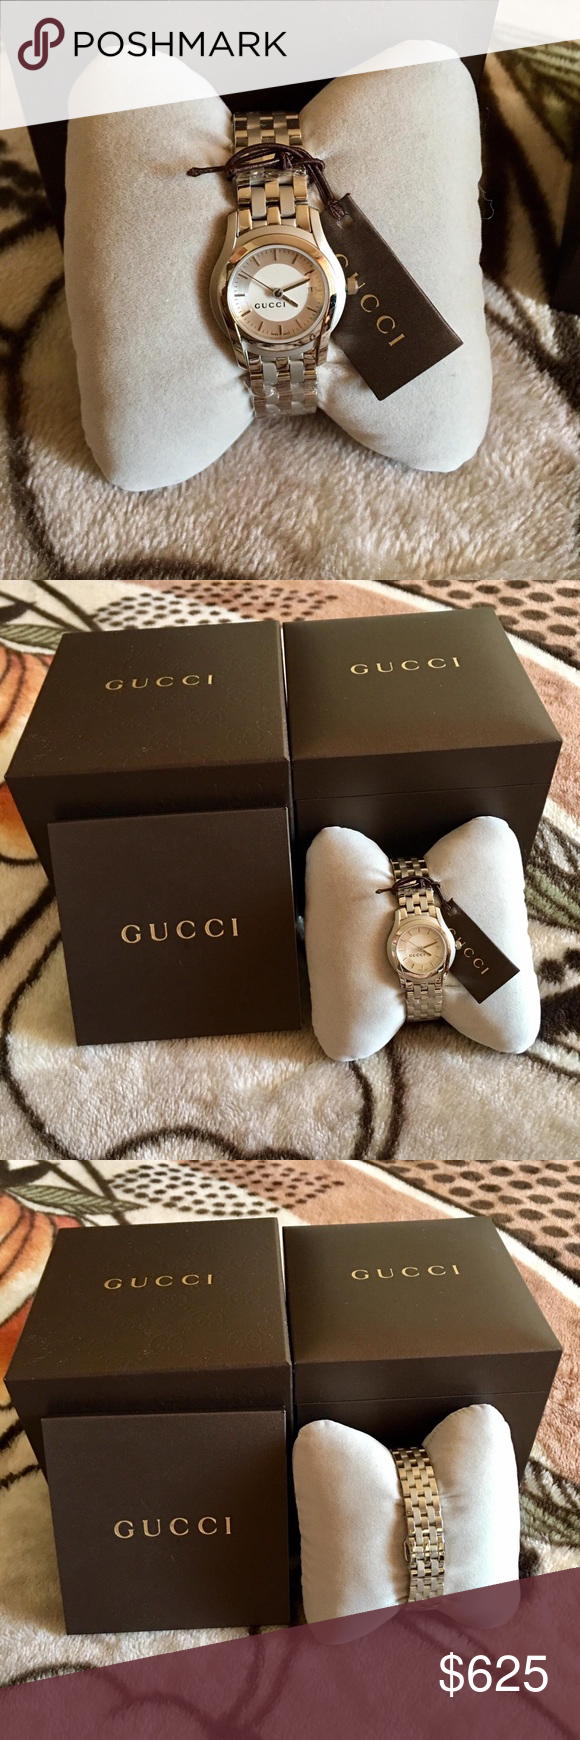 09f0e4aa019 GUCCI Womens Watch Brand new in original packaging 100% authentic! Price  firm Gucci Accessories